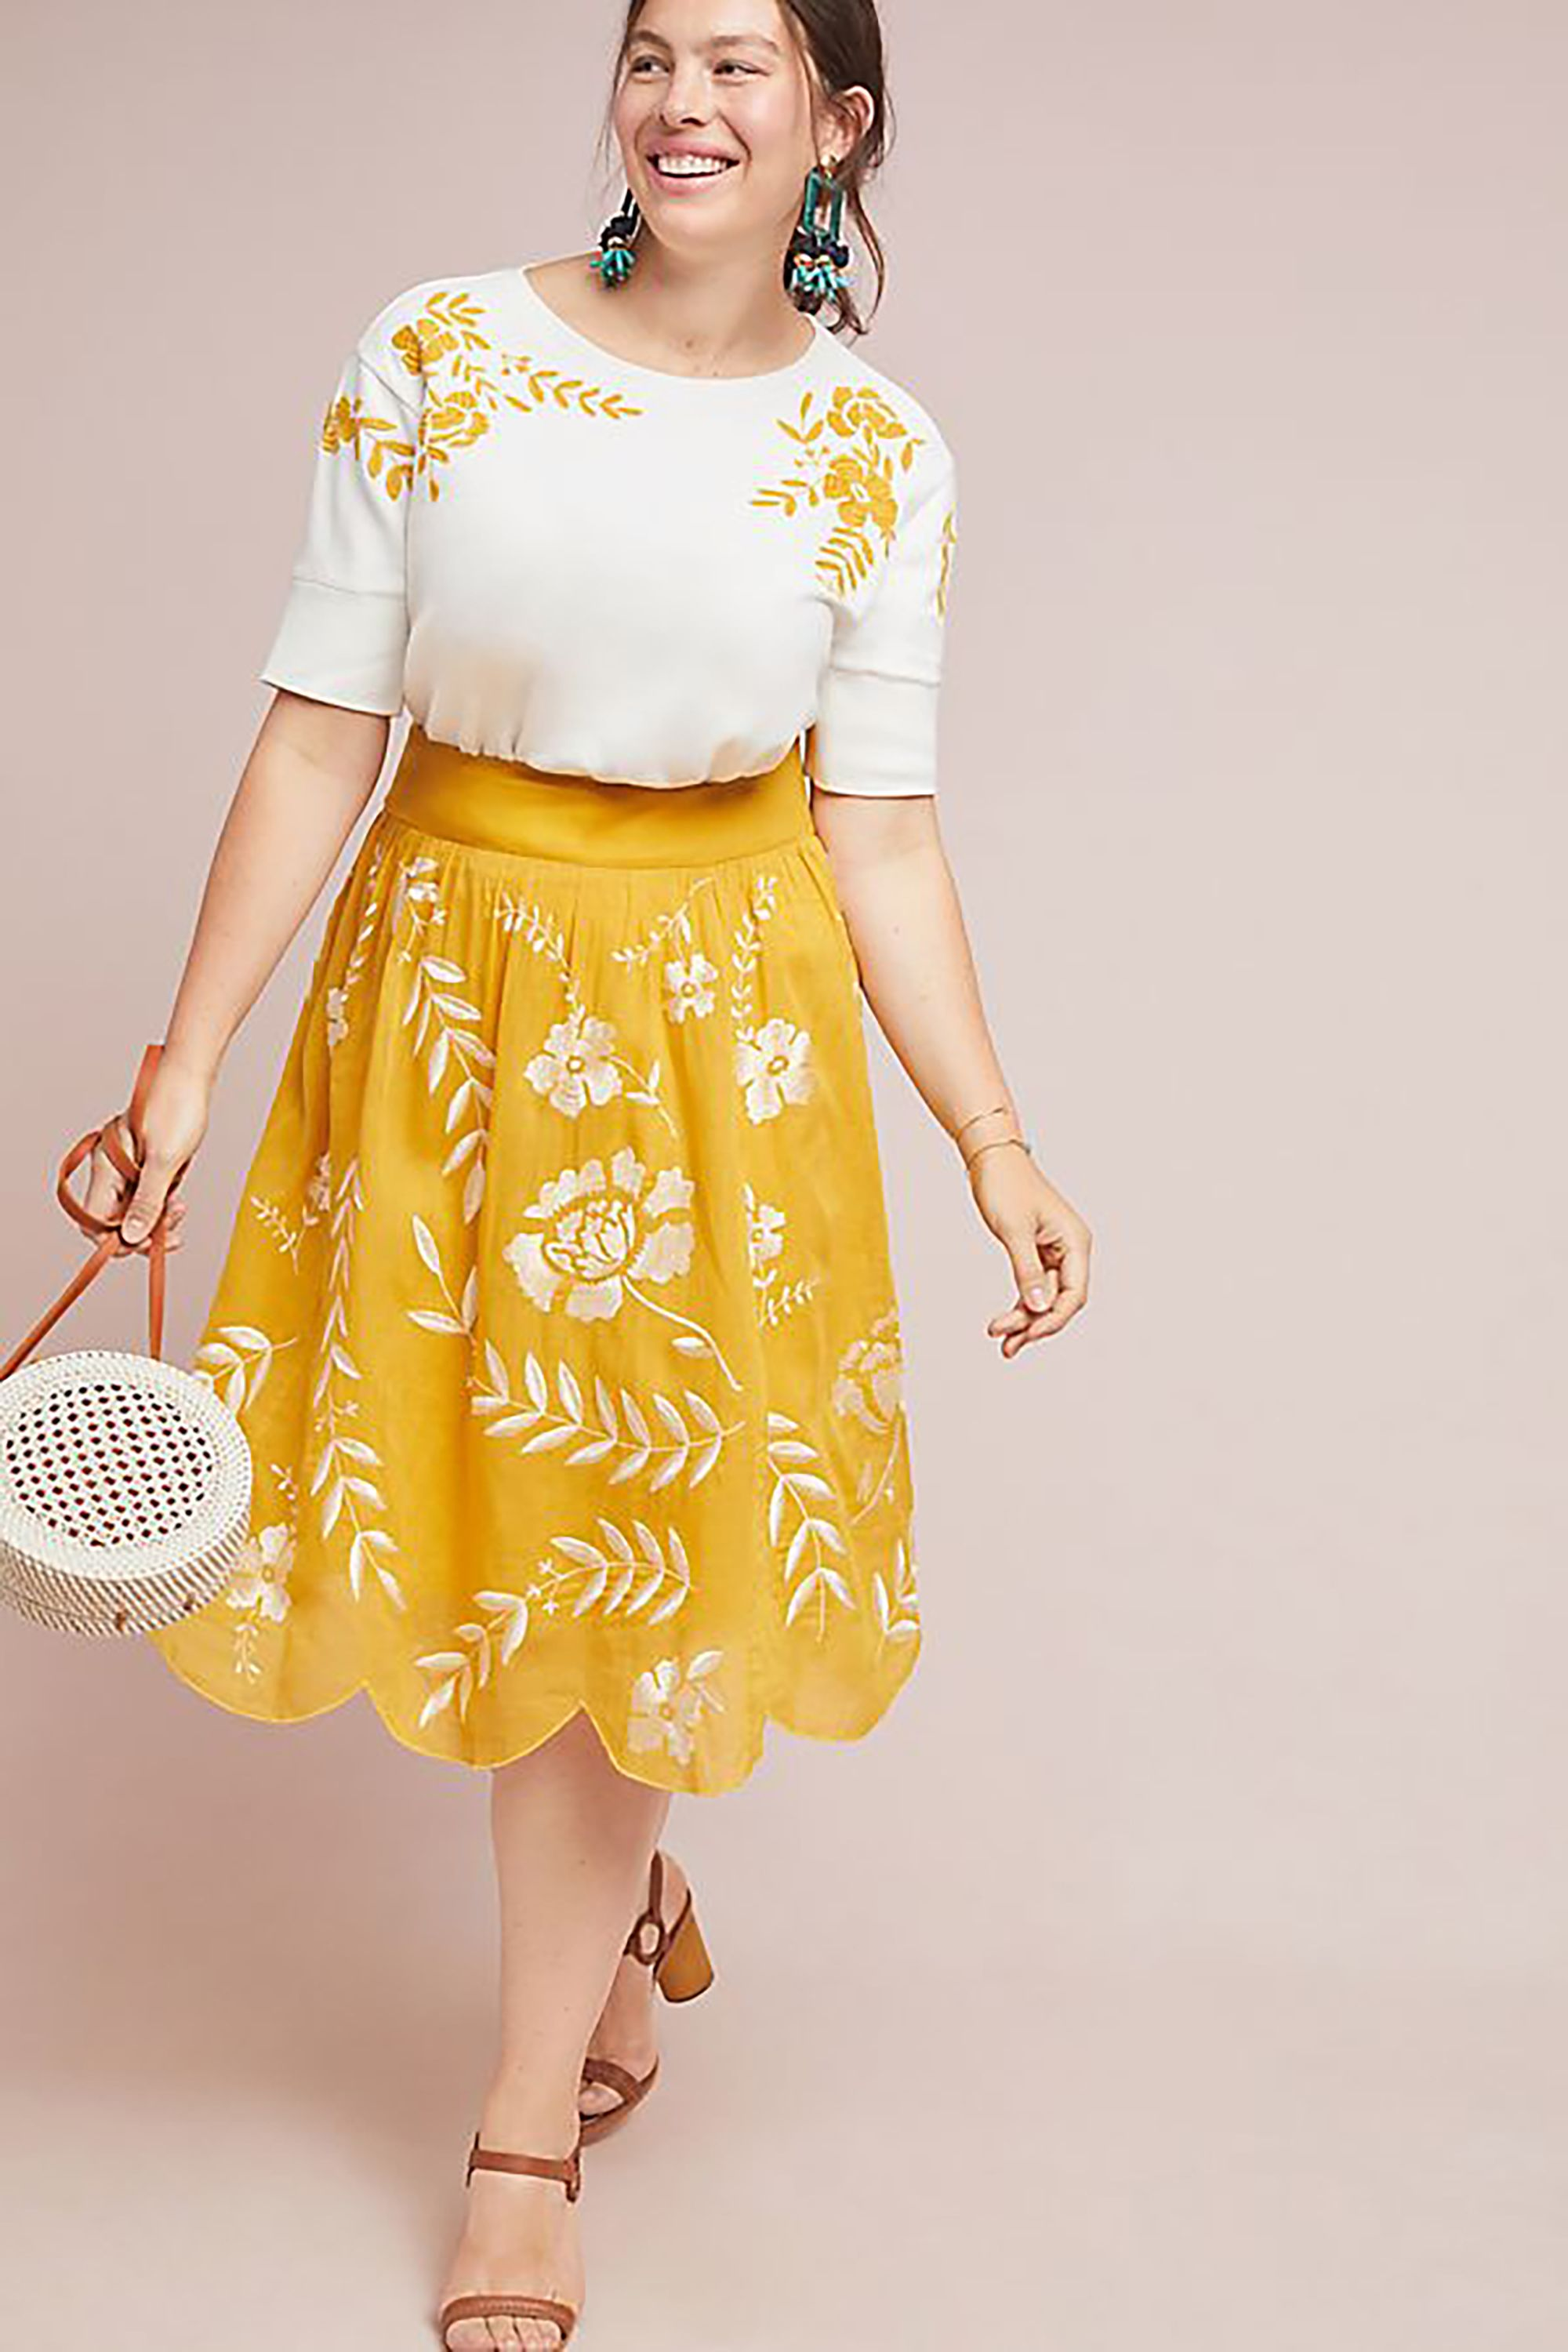 3442b74e157 Anthropologie Just Extended Its Clothing Sizes Up to 26 and We ve ...